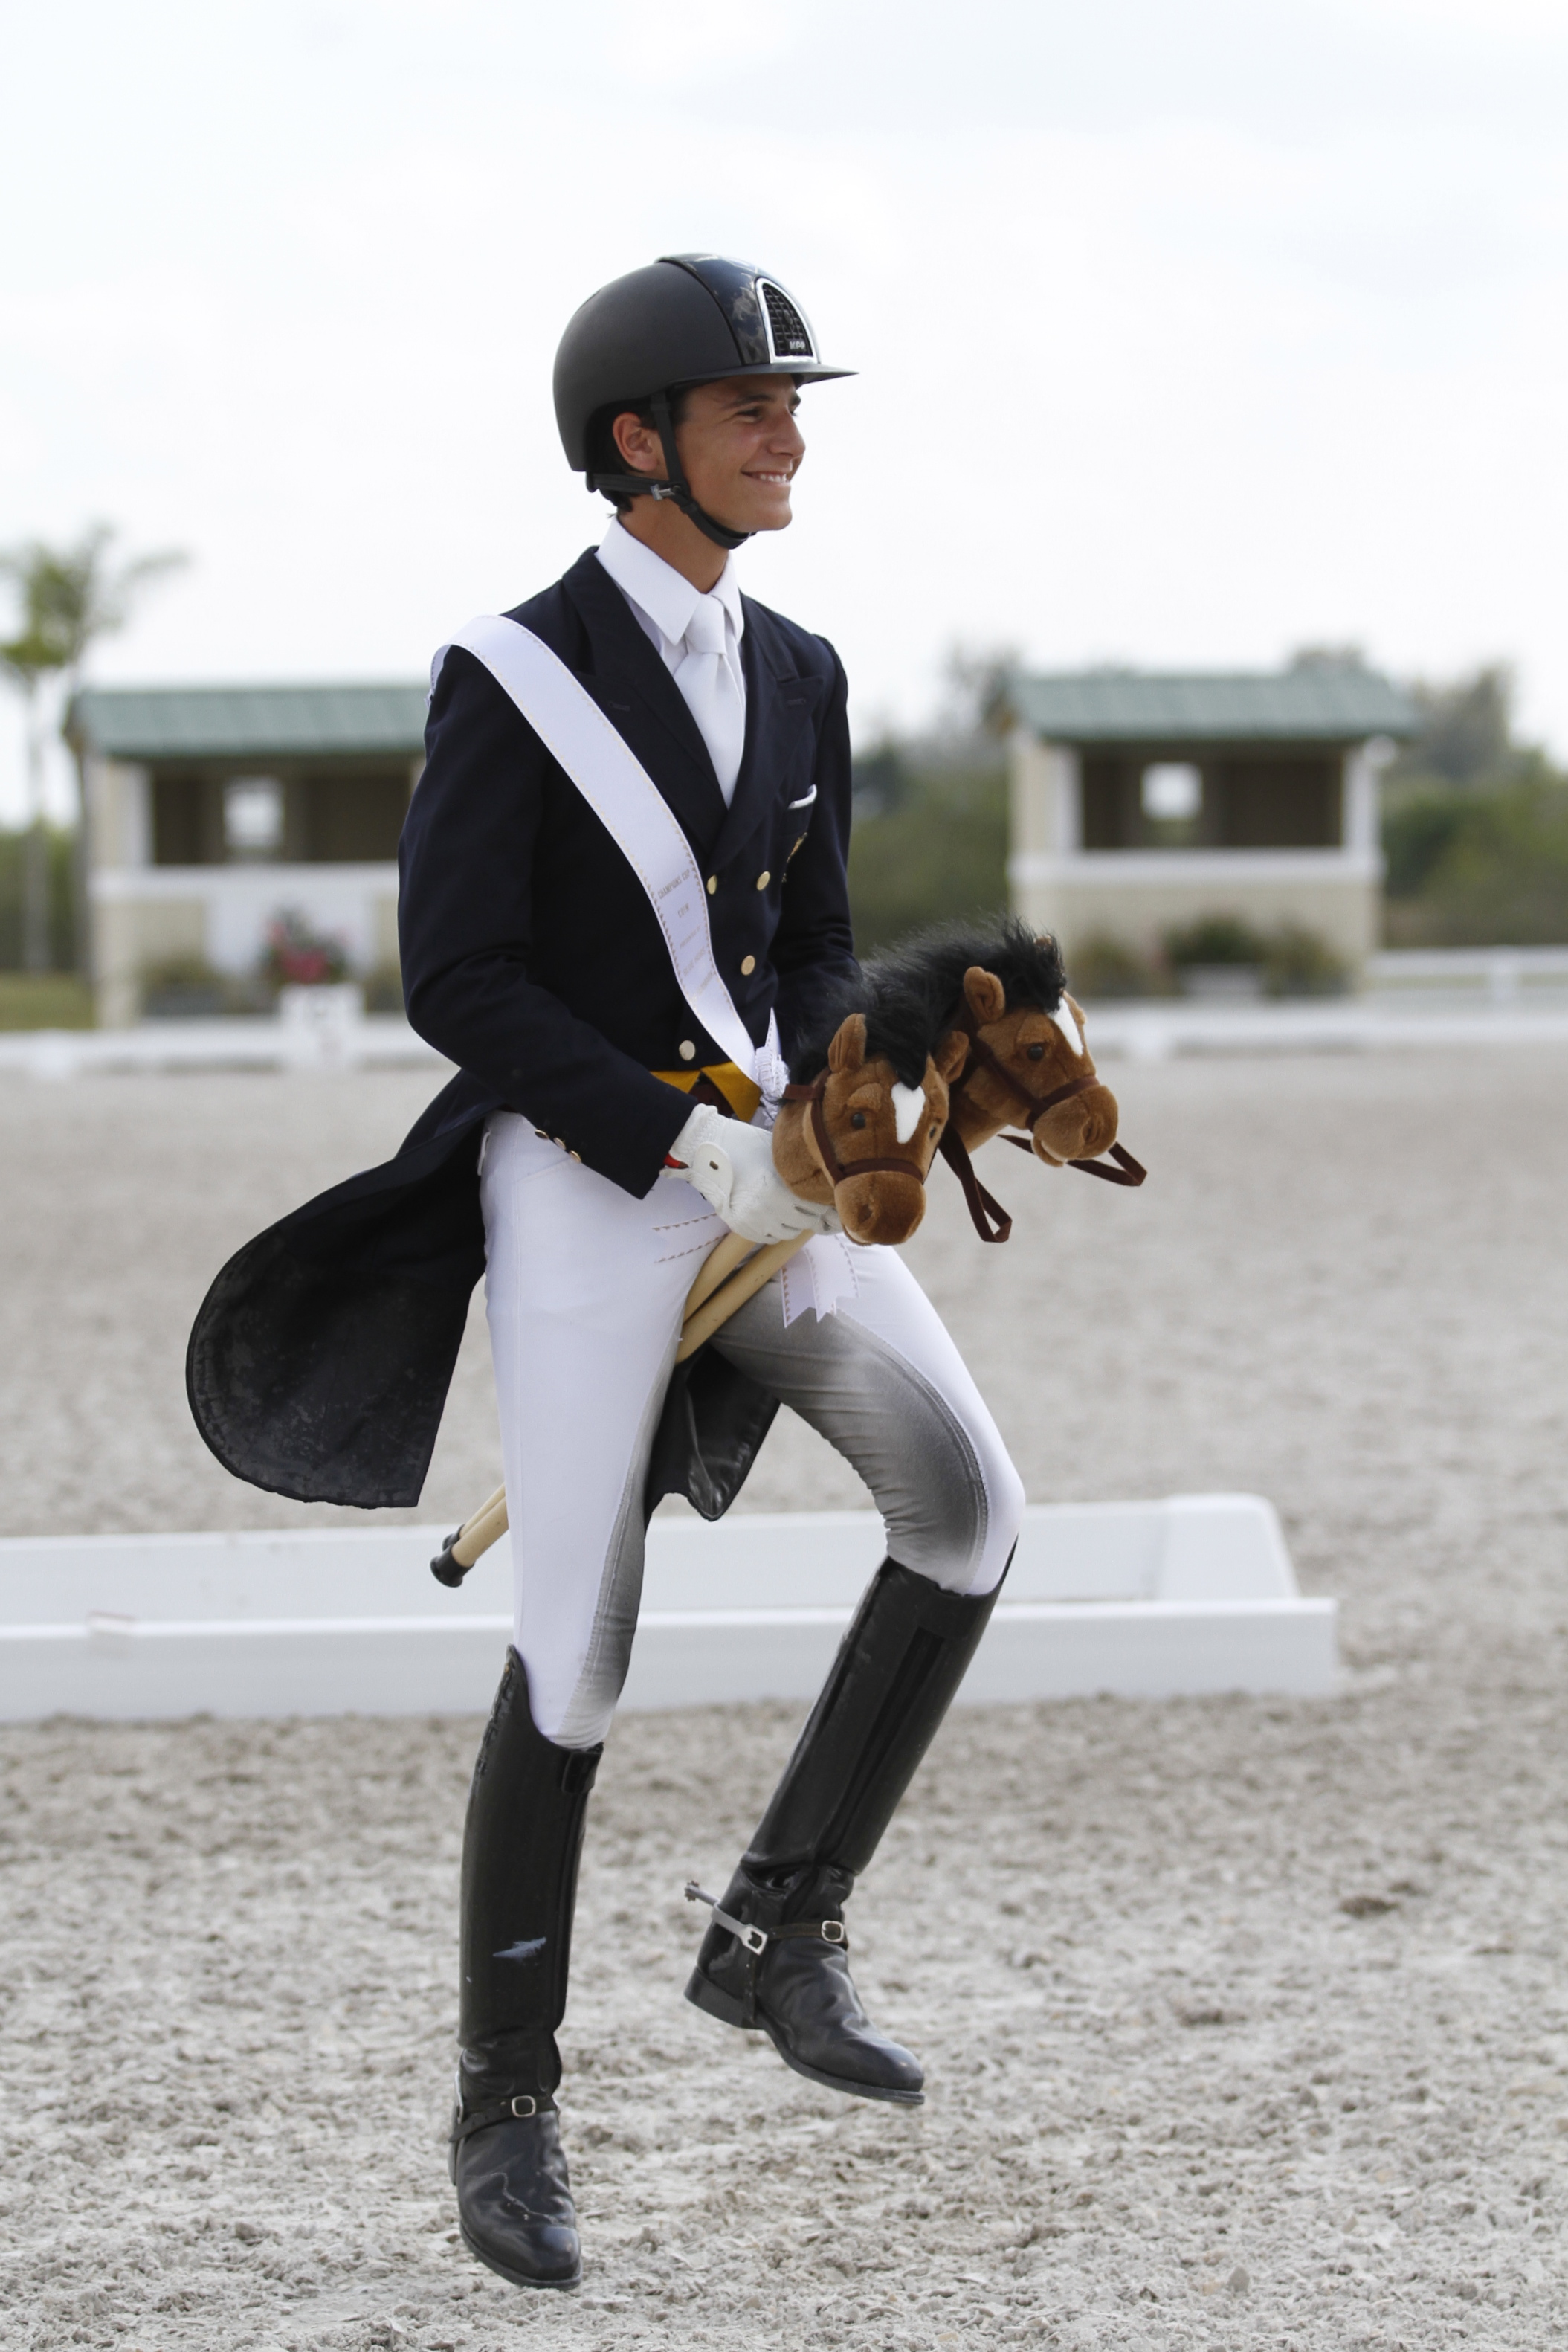 Juan Matute, Jr., rides not one, but two horses in the awards ceremony